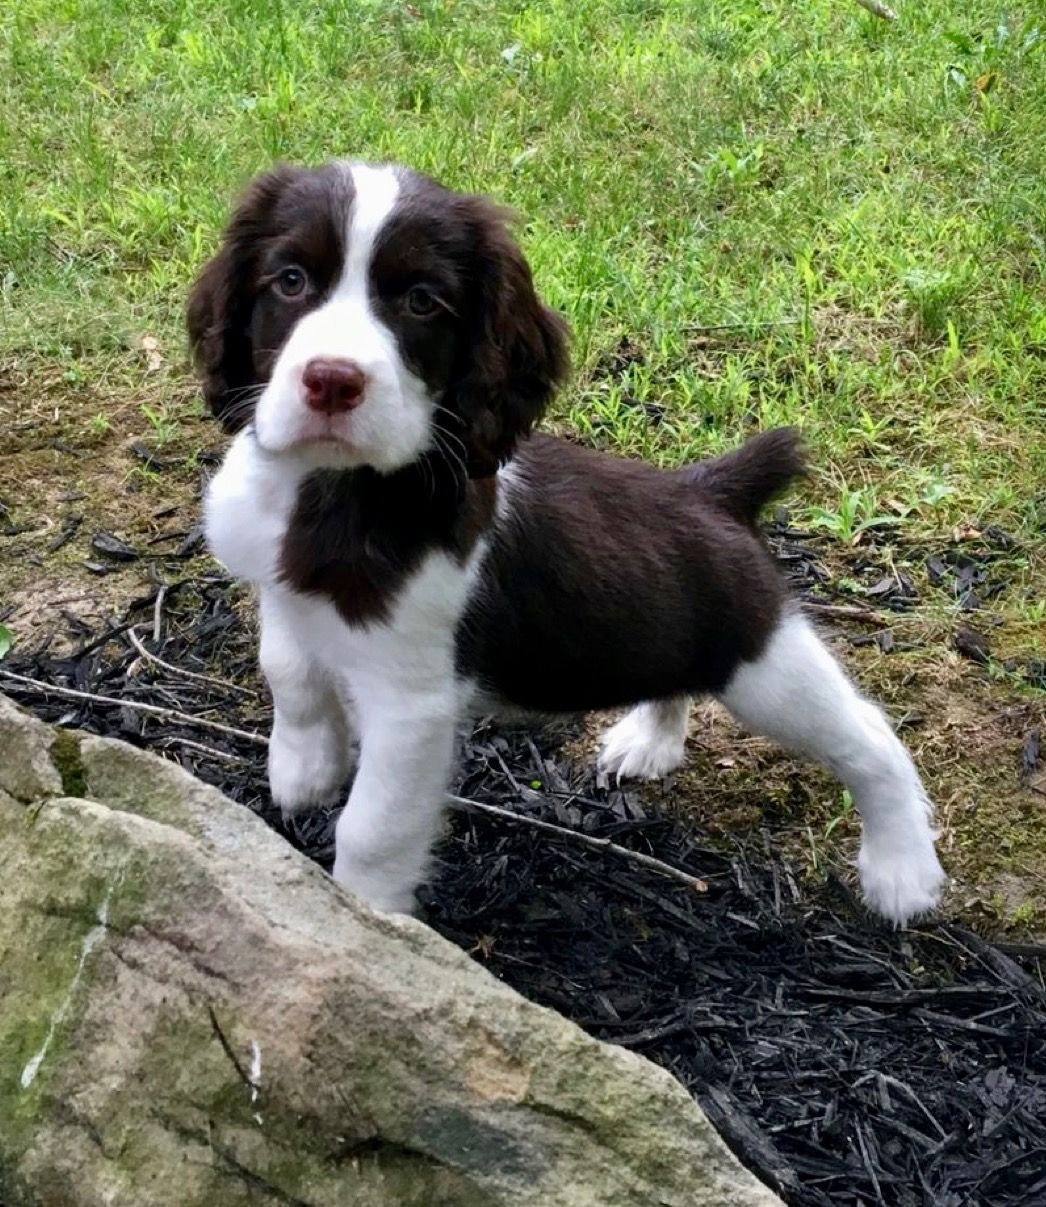 Pin By Susiemac On Dogs Puppies Springer Spaniel Puppies Spaniel Puppies Springer Puppies